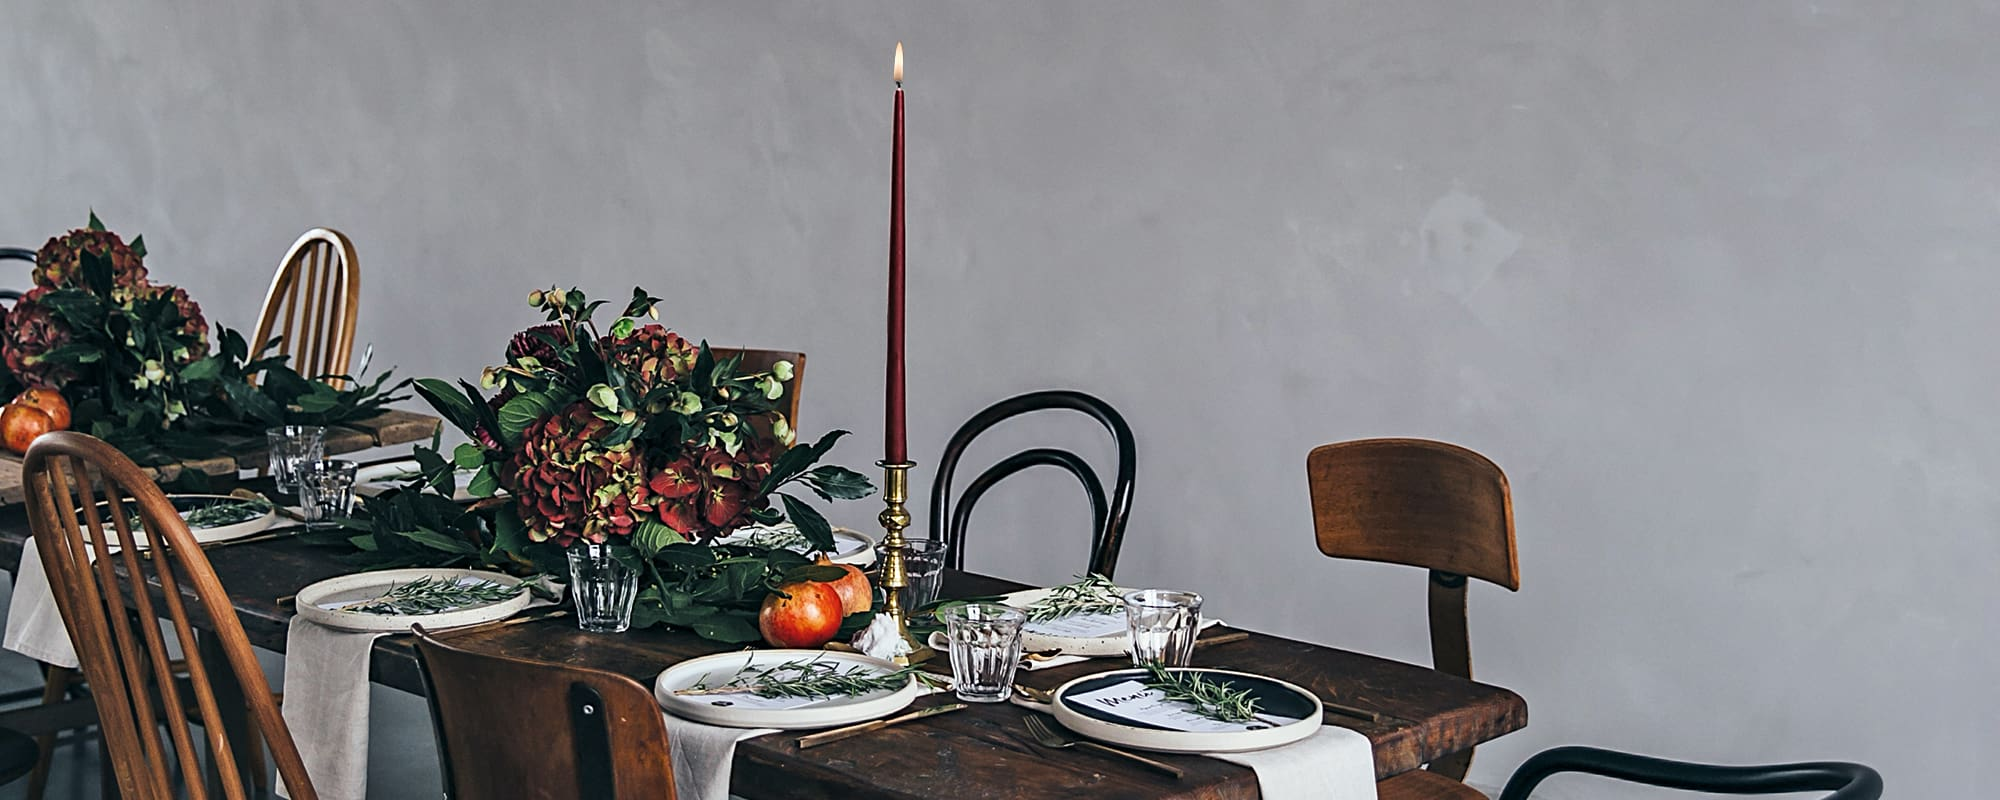 Weihnachten Dekoration, Our Food Stories Ruby Barber Mary Lennox, Ruby Barber Mary Lennox